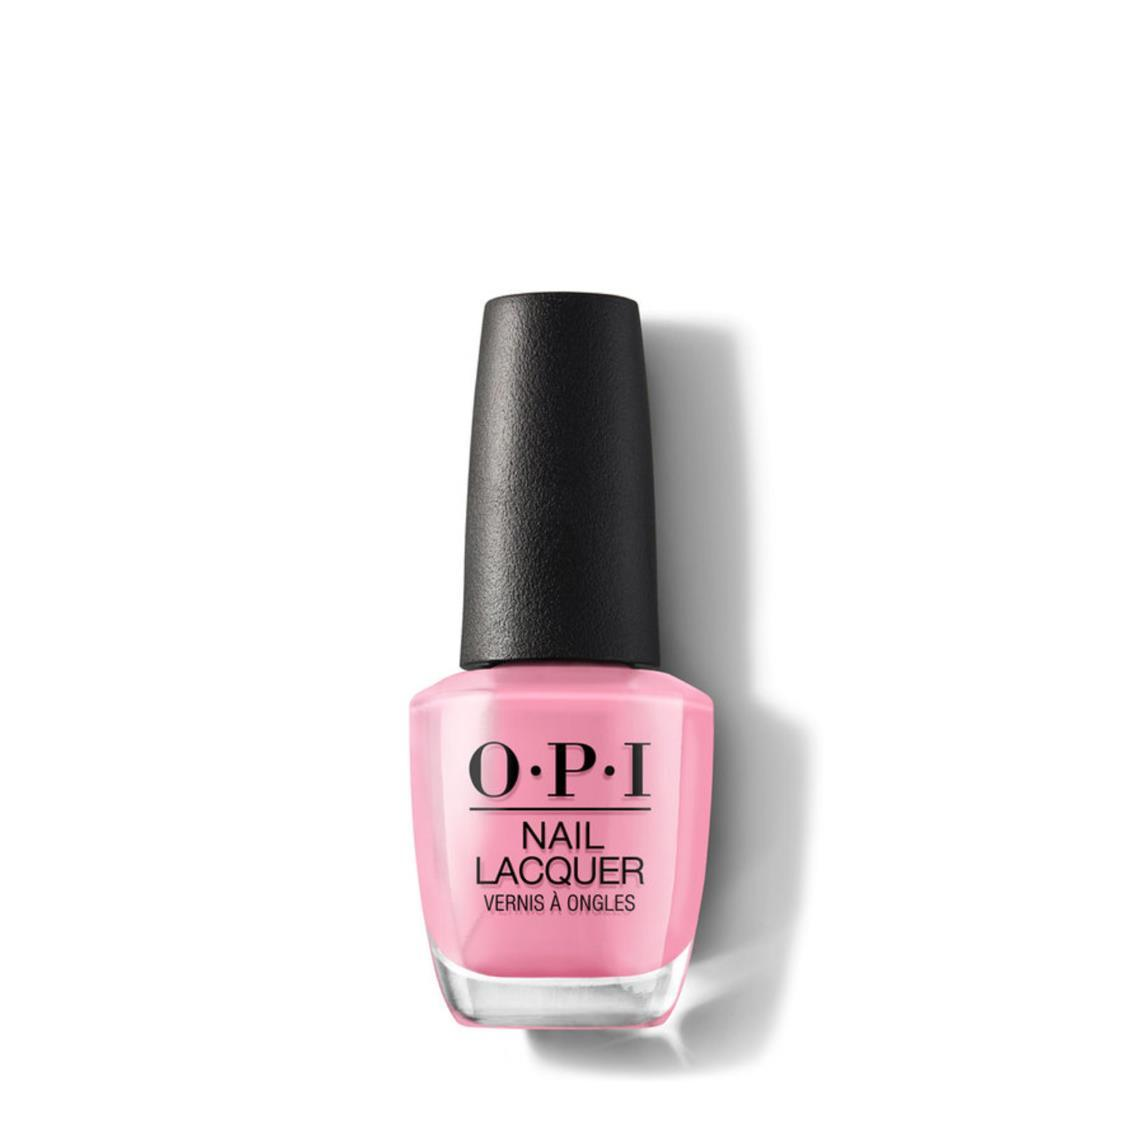 Opi Fall Collection 2018 Nail Lacquer Lima Tell You About This Color 15ml